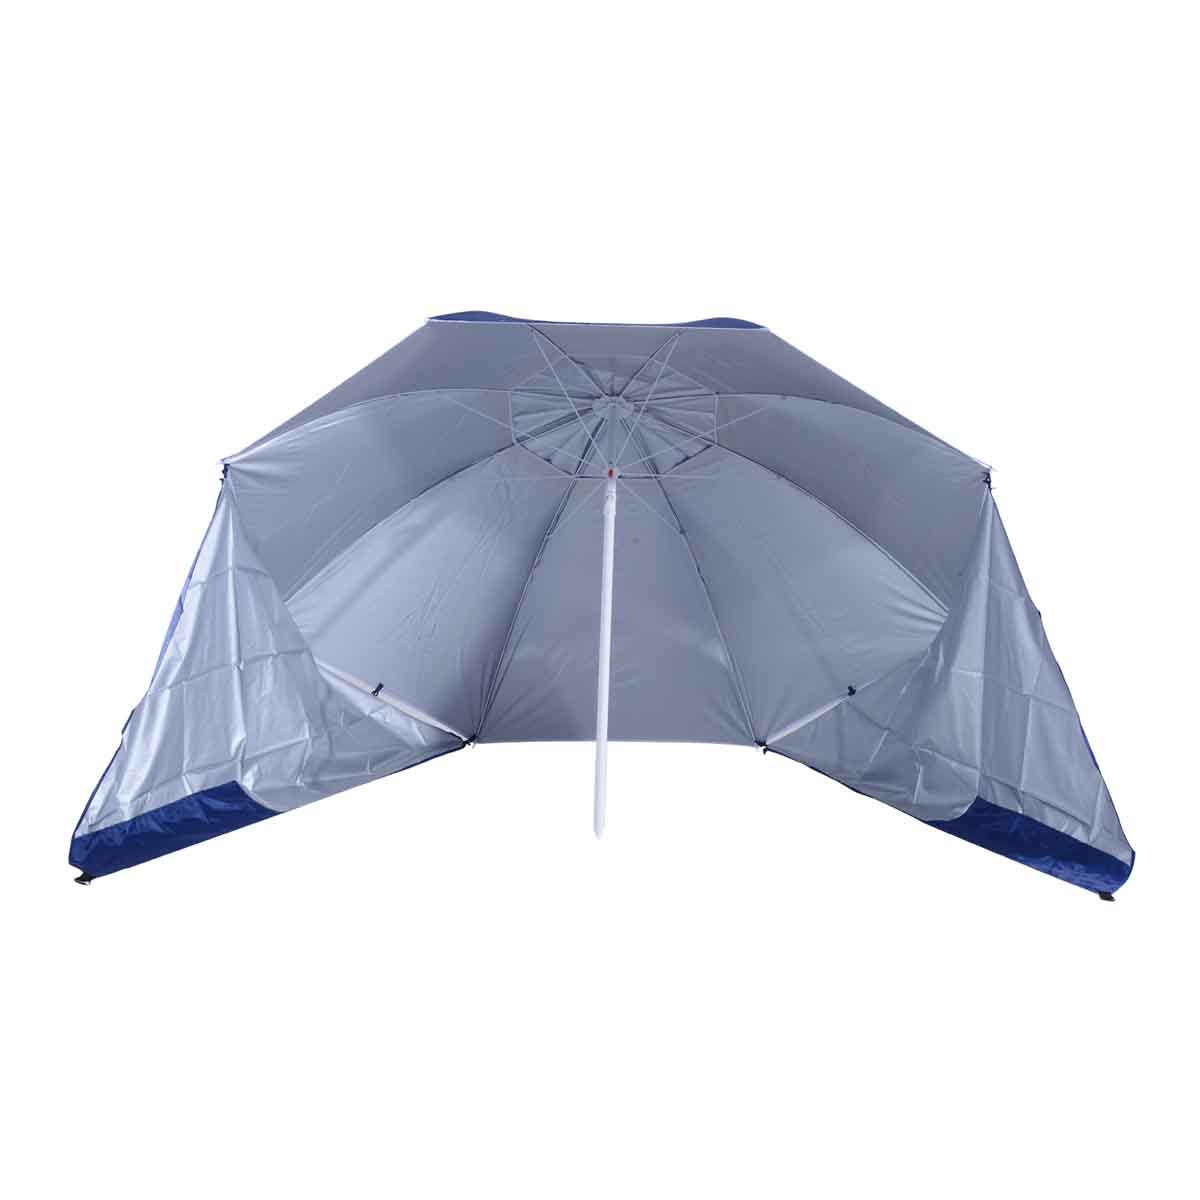 Outsunny 2 in 1 Beach Parasol Canopy (base not included) - Blue